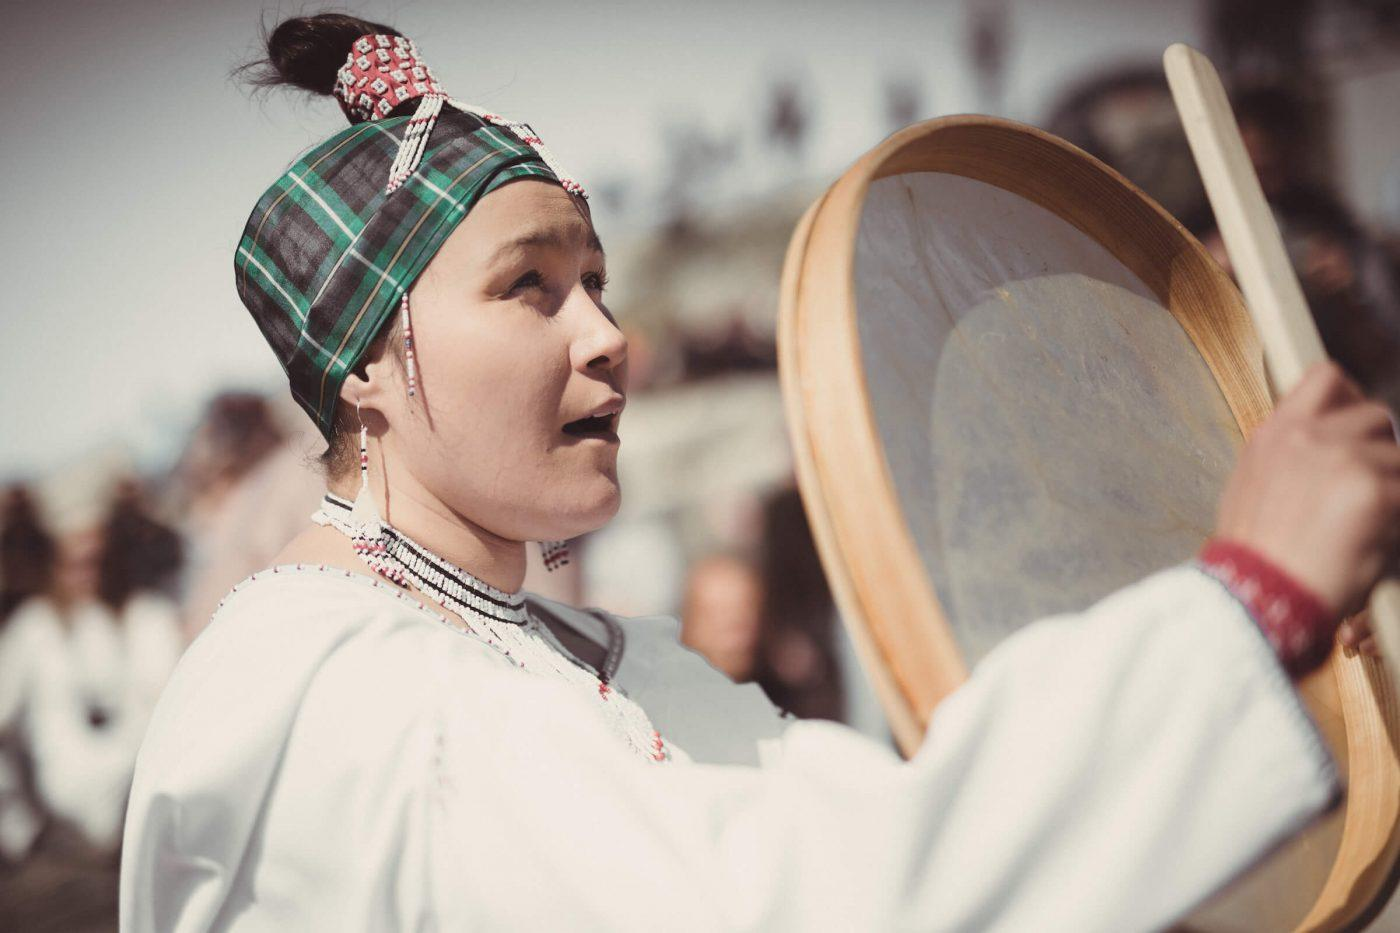 A drum dancer performing in Nuuk on the National Day, June 21 in Greenland